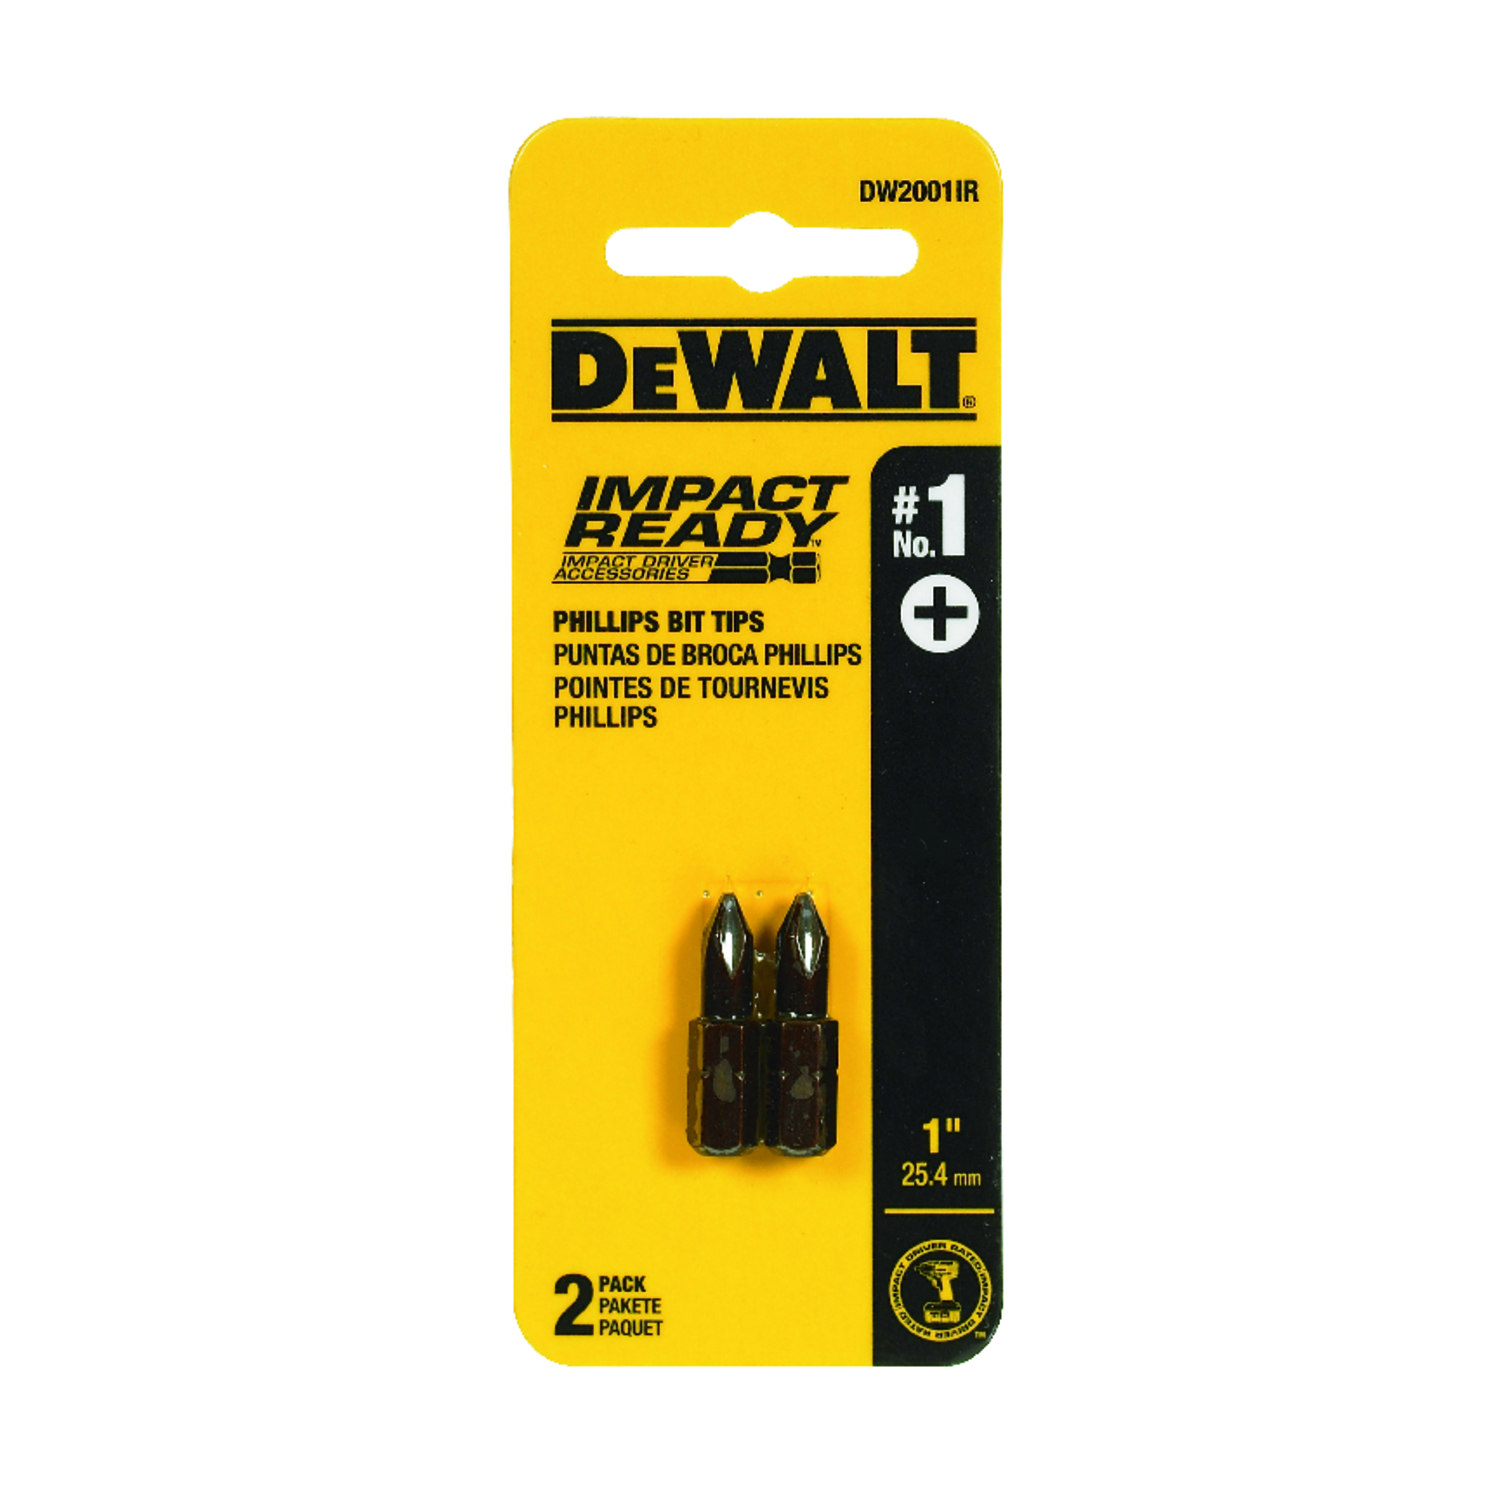 DeWalt  Impact Ready  Phillips  Screwdriver Bit  Black Oxide  1/4 in. #1   x 1 in. L 2 pc.